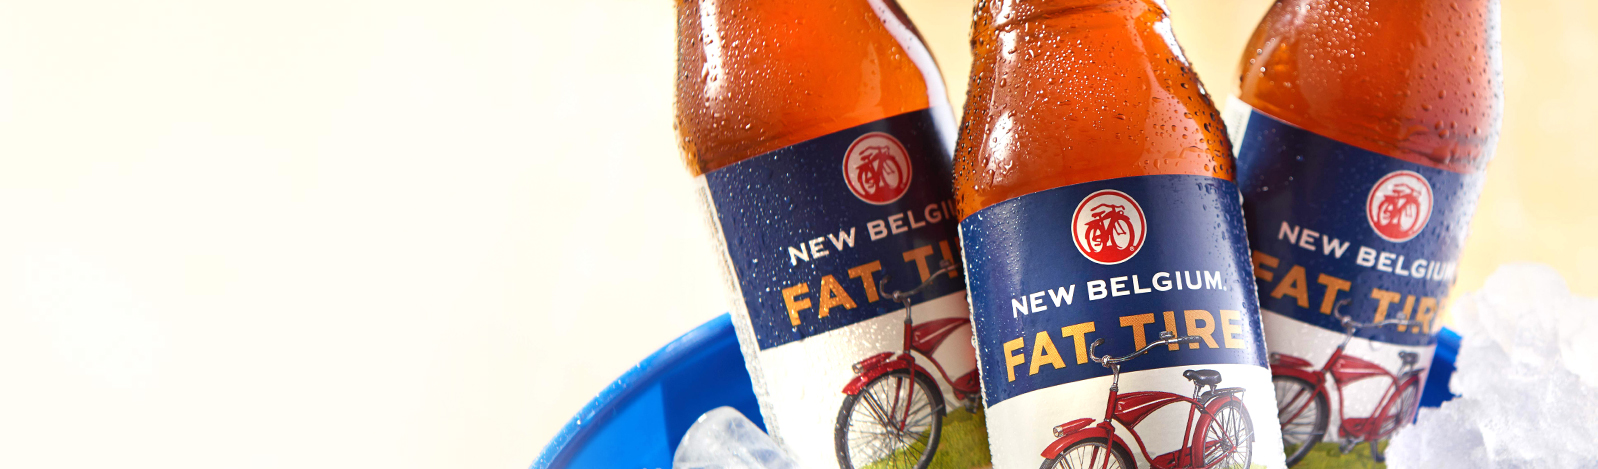 Sustainable packaging. Fat Tire New Belgium beer labels by Inland